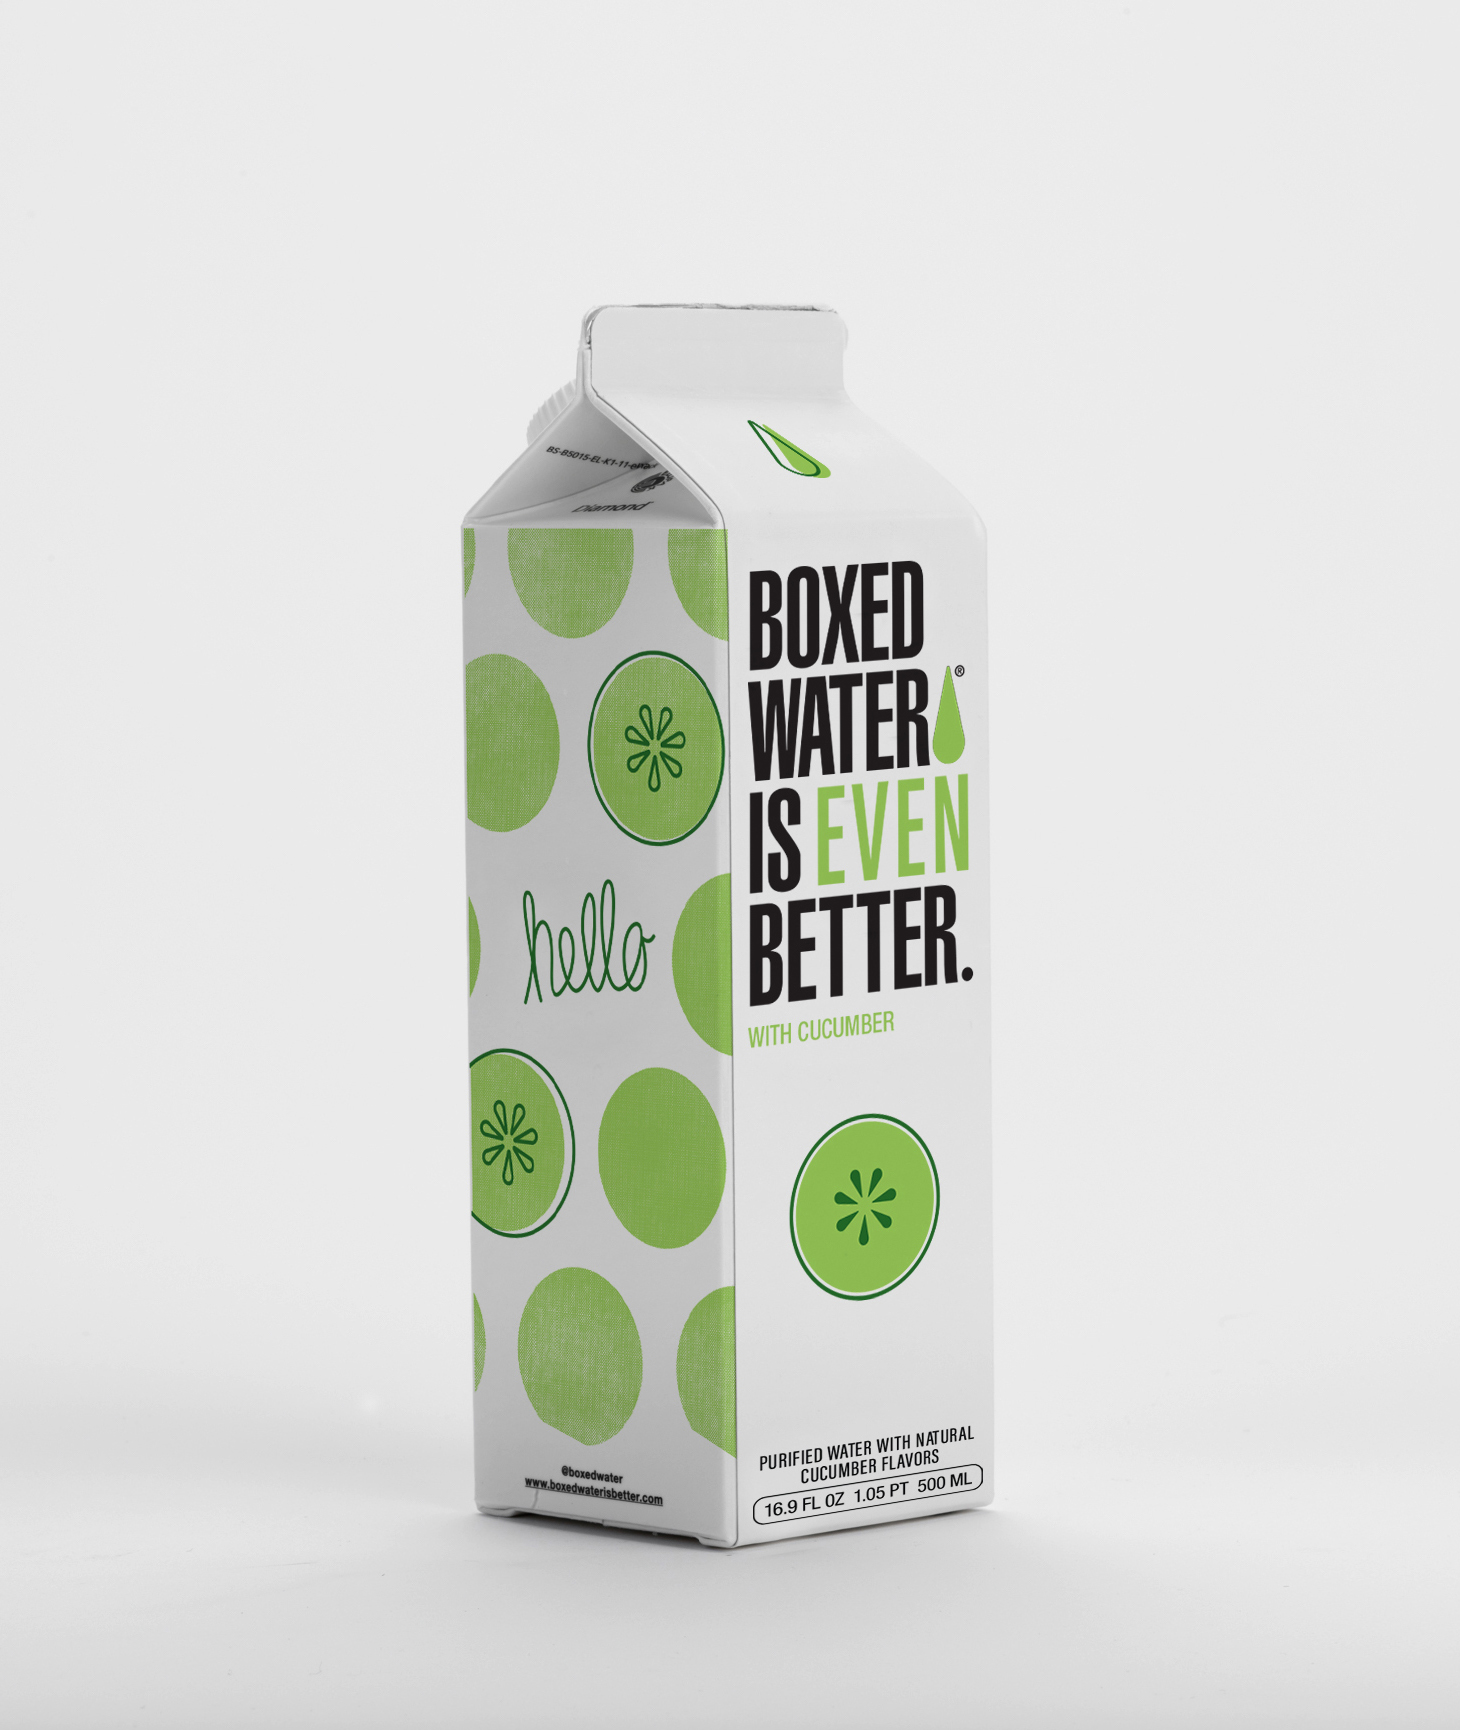 Boxed Water Is Even Better Cucumber